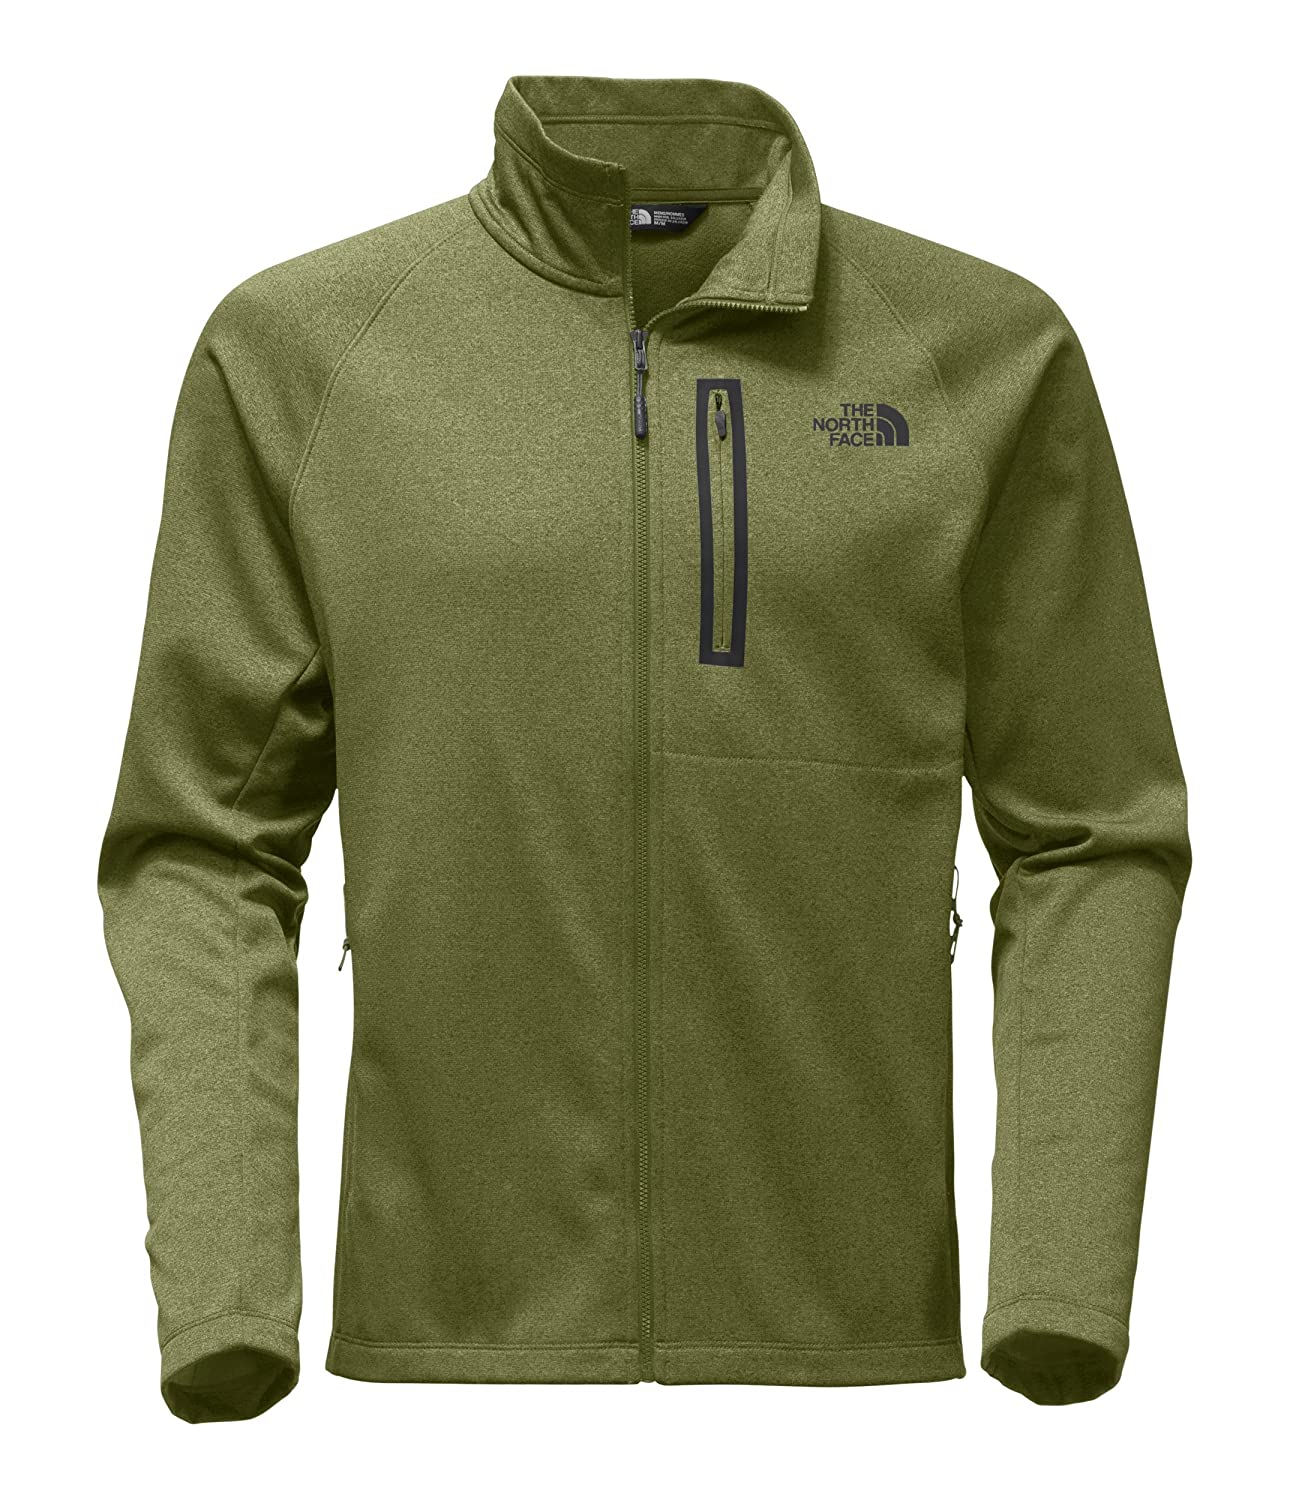 The North Face Men's Canyonlands Full Zip Sweatshirt The North Face Apparel Mens NF00CUF9